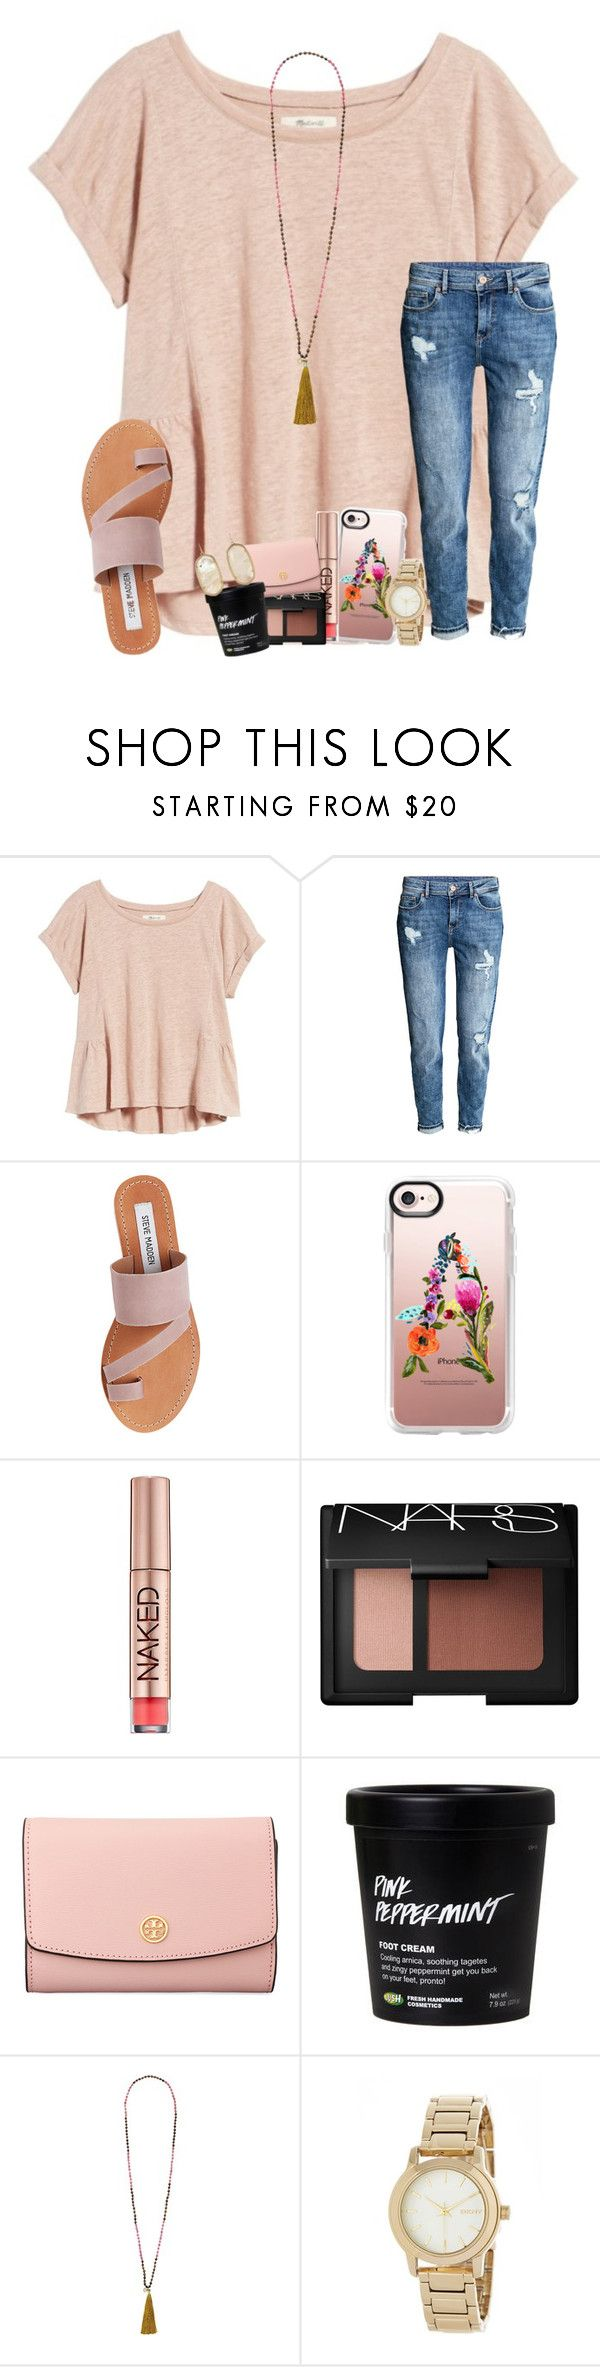 """one number away"" by karinaceleste ❤ liked on Polyvore featuring Madewell, Steve Madden, Casetify, Urban Decay, NARS Cosmetics, Tory Burch, French Connection, DKNY and Kendra Scott"